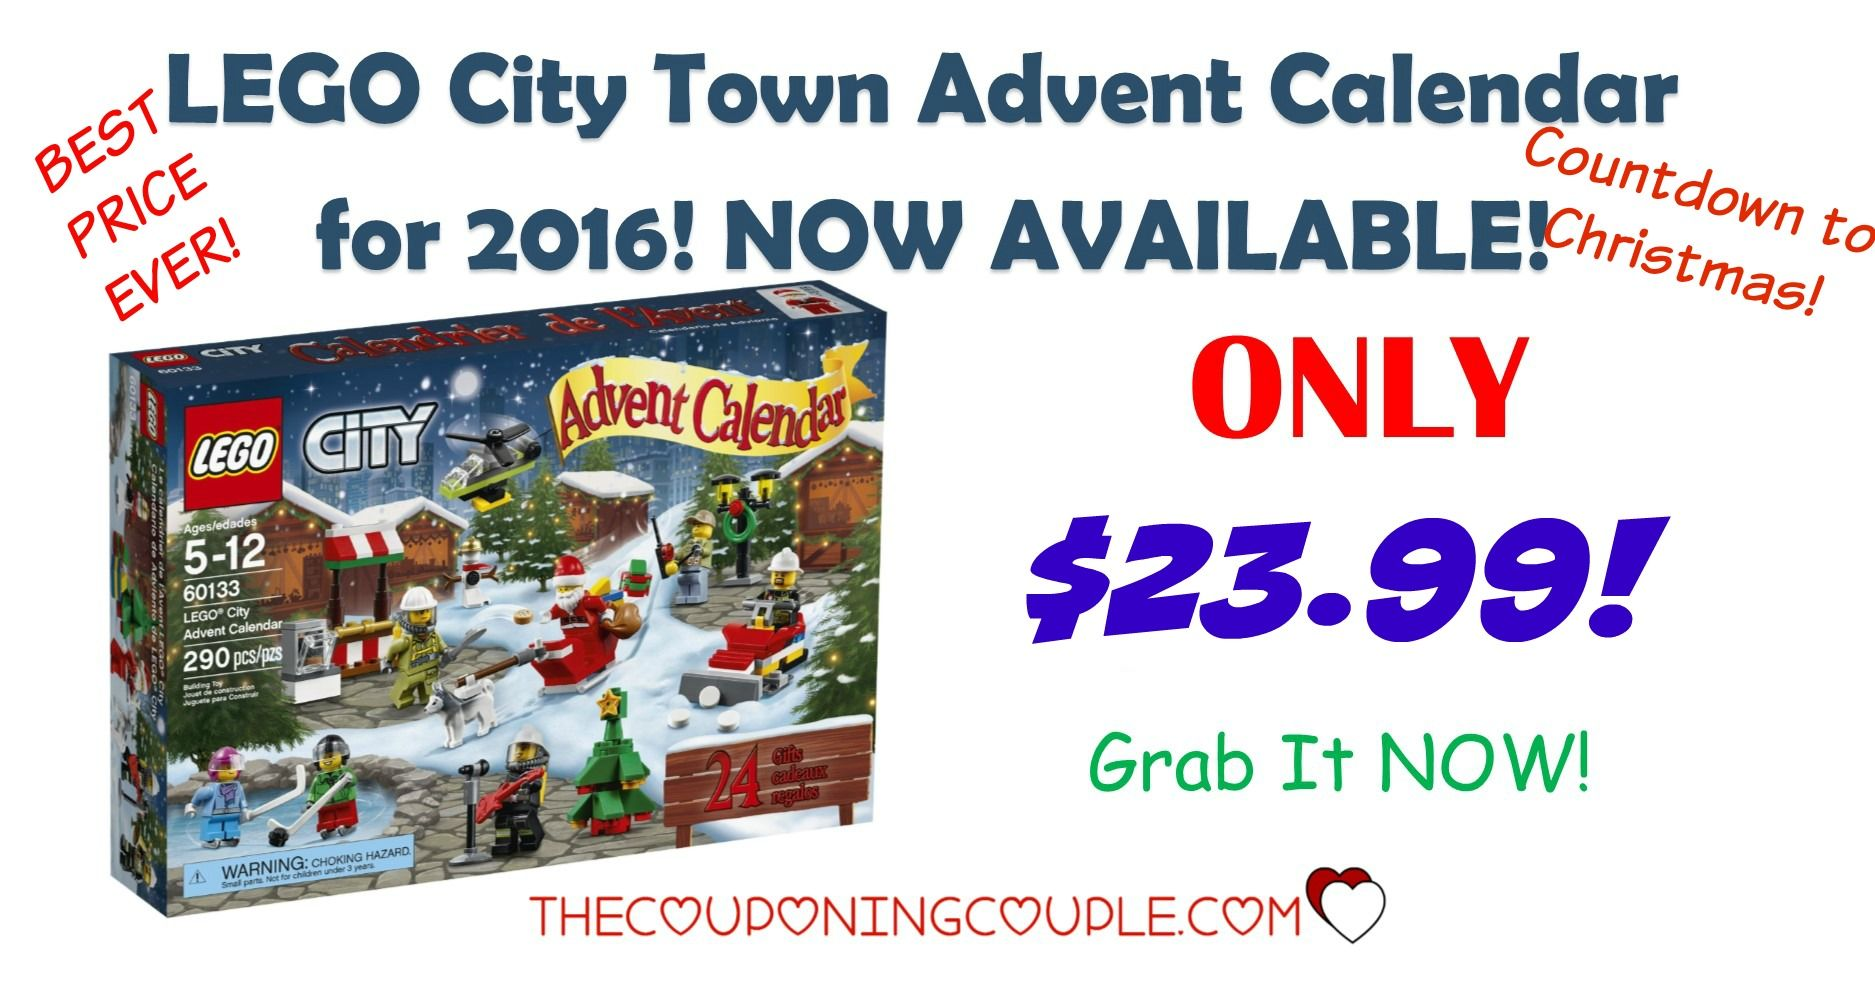 BEST PRICE EVER! The LEGO City Town Advent Calendar for 2016 is available! Grab it NOW while it is available! It will be harder to find as we get closer to Christmas! $23.99!  Click the link below to get all of the details ► http://www.thecouponingcouple.com/lego-city-town-advent-calendar-2016-29-99/ #Coupons #Couponing #CouponCommunity  Visit us at http://www.thecouponingcouple.com for more great posts!